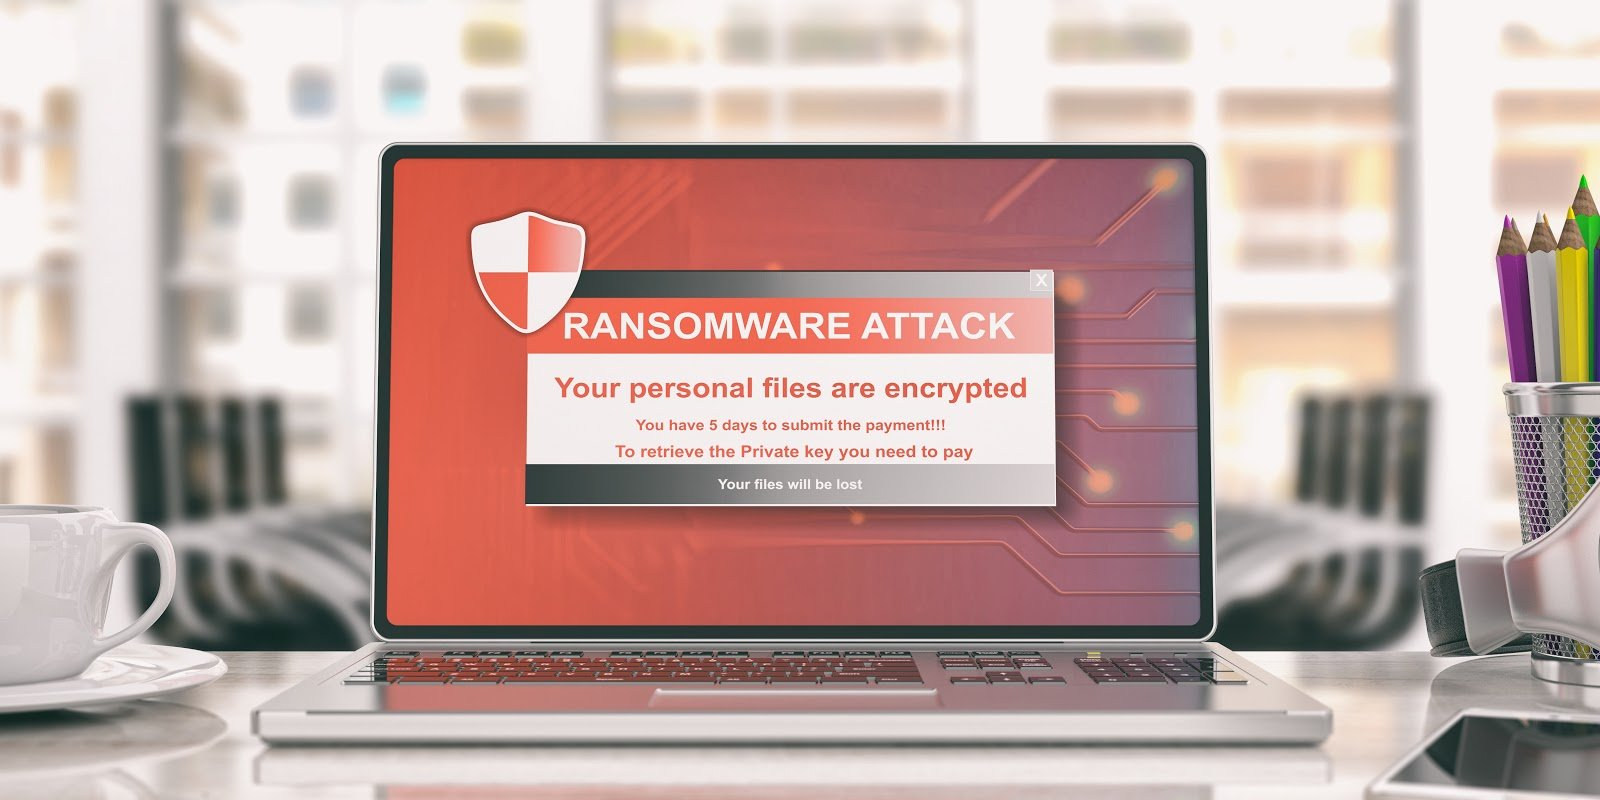 Ransomware attack warning